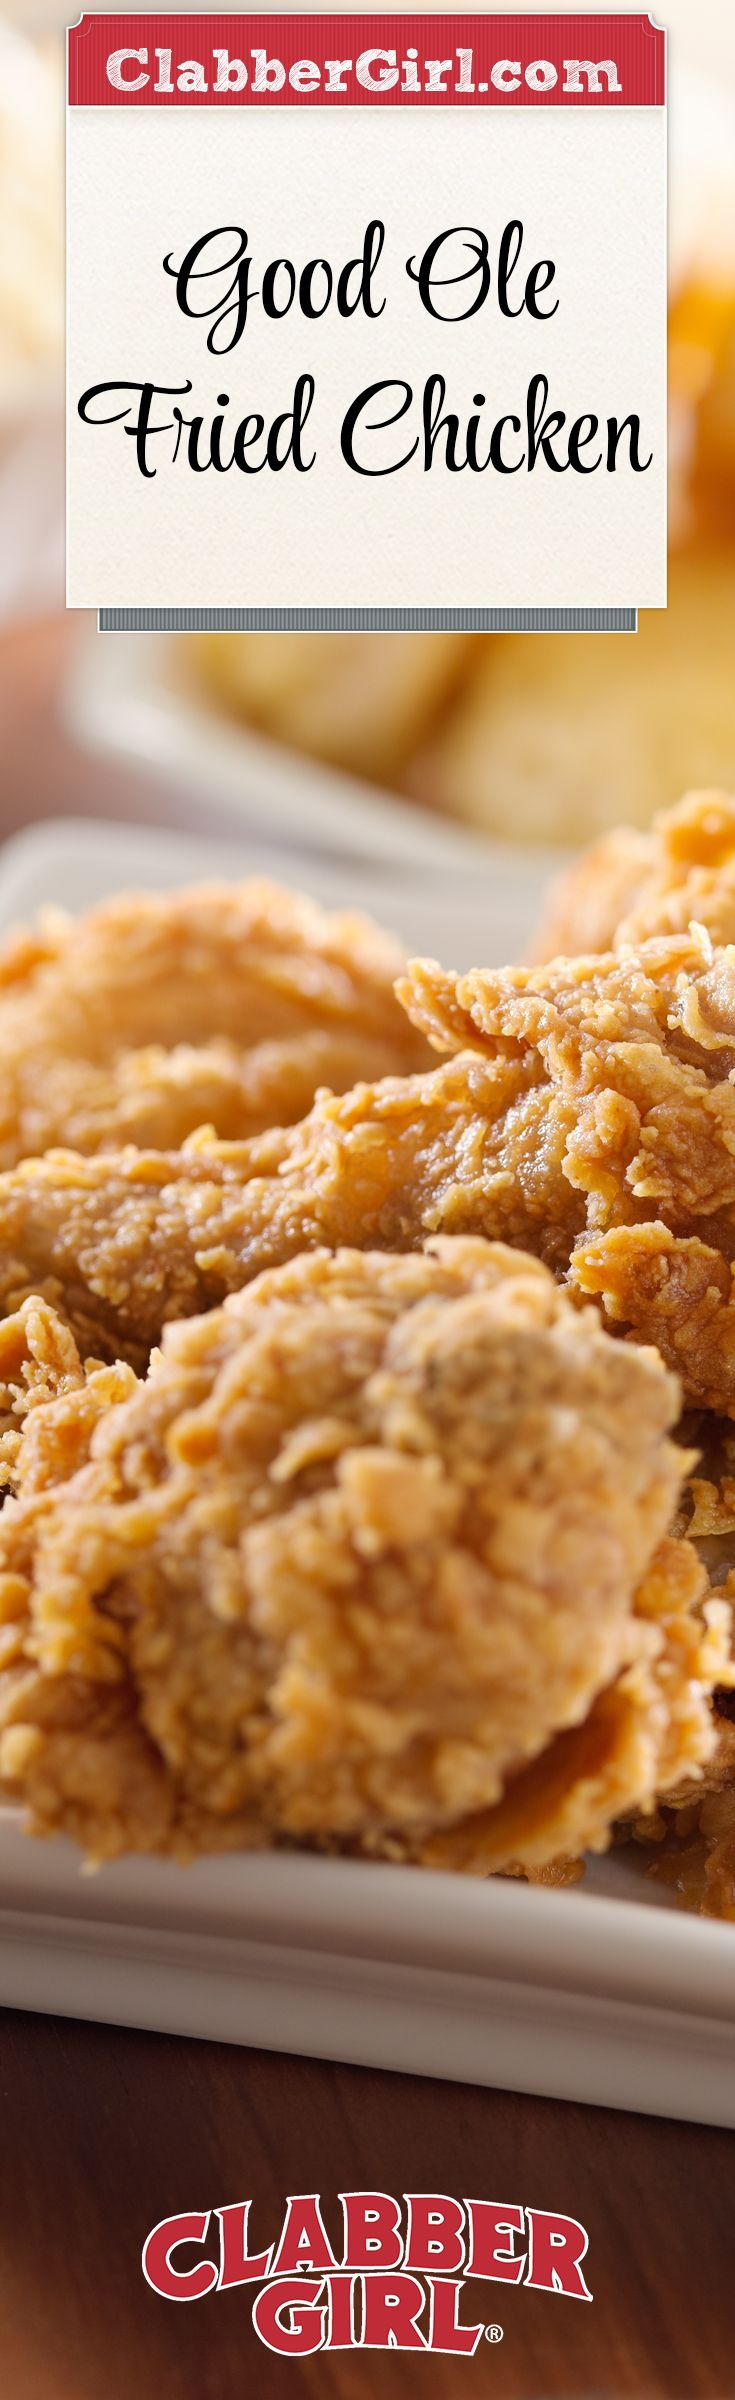 This fried chicken come out moist with a crispy crust; it's the ideal old fashioned recipe that has withstood the test of time.